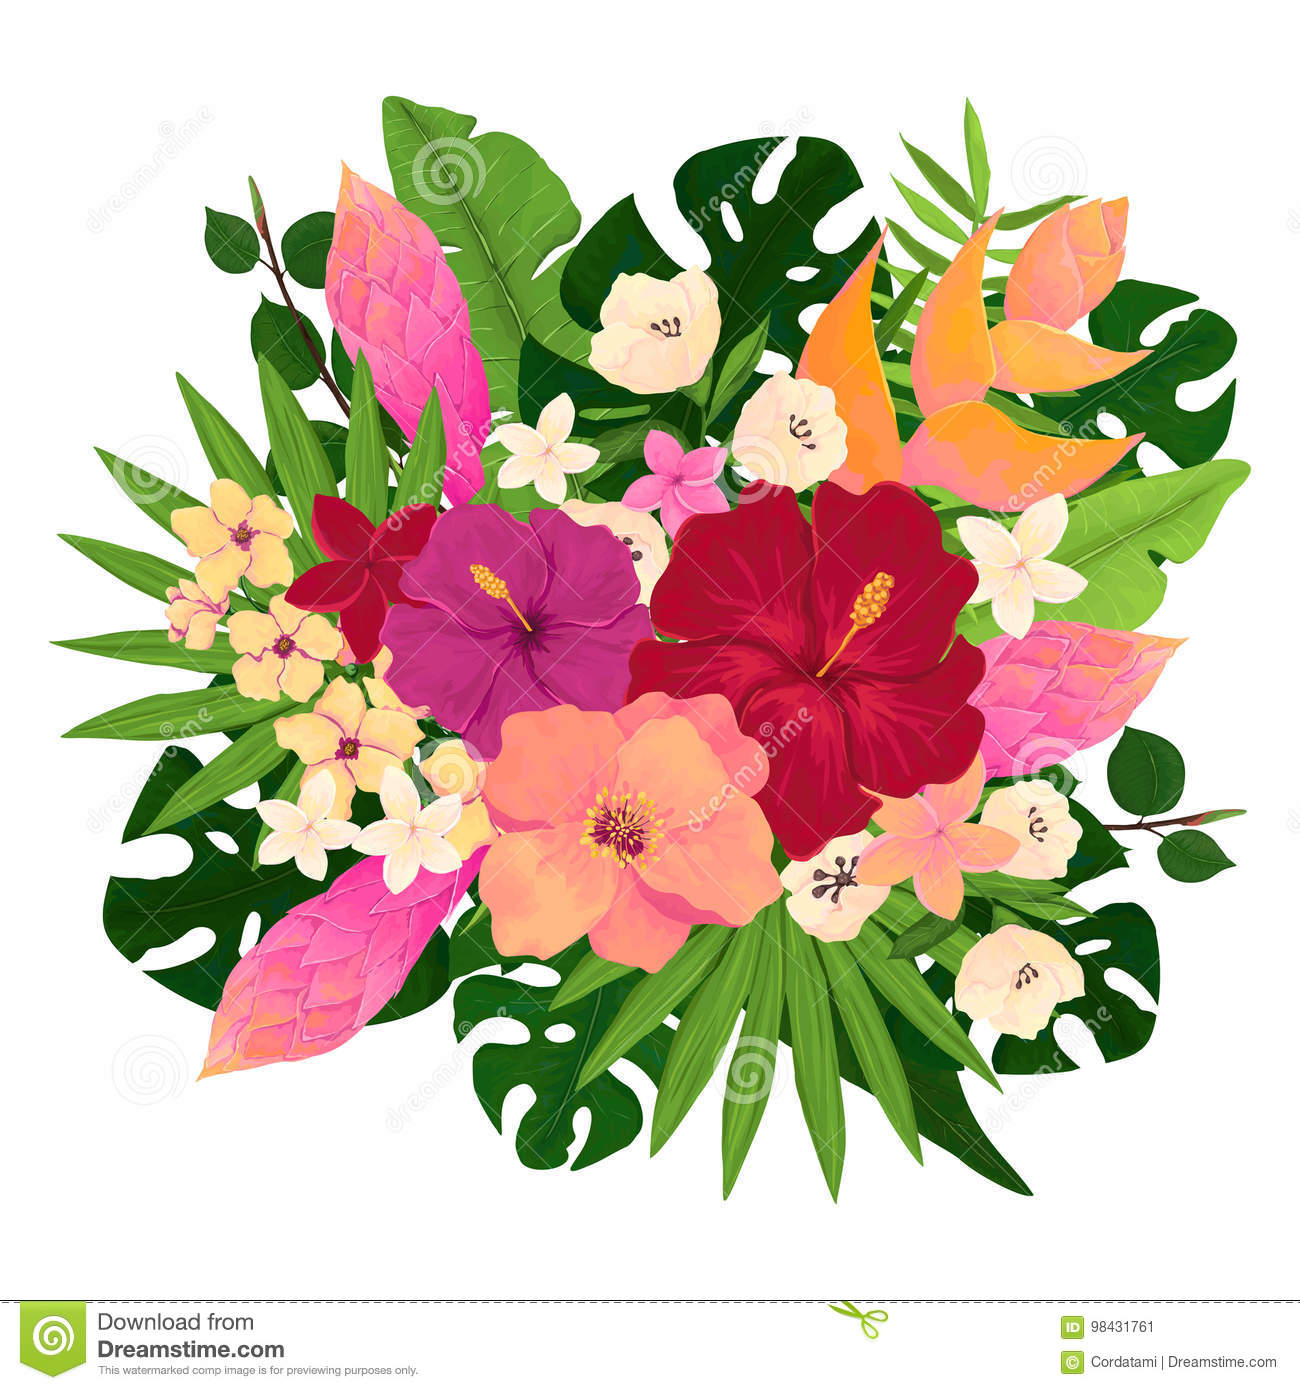 Bouquet with pink red and yellow flowers stock illustration download bouquet with pink red and yellow flowers stock illustration illustration of nature mightylinksfo